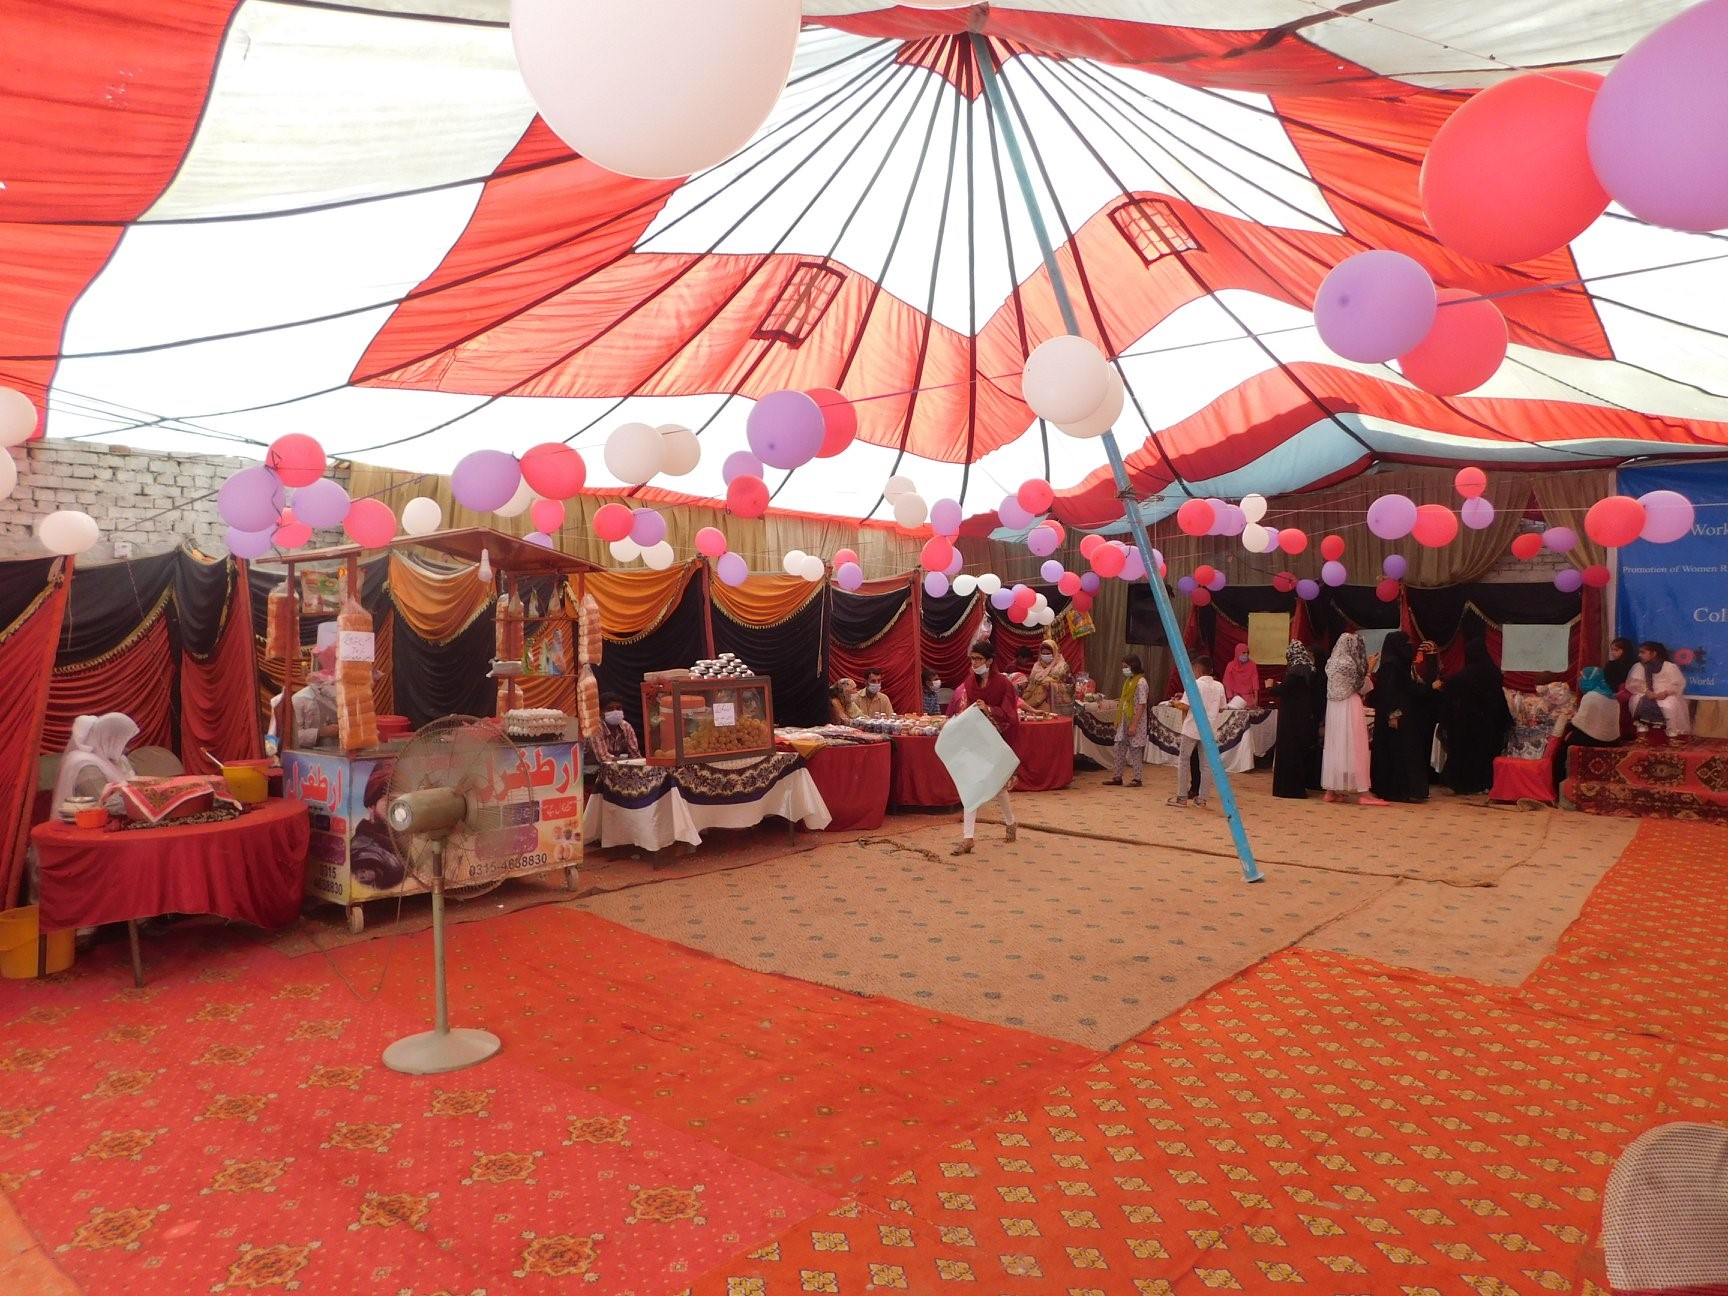 Entrepreneurial Mela in Collaboration with Bread for the World